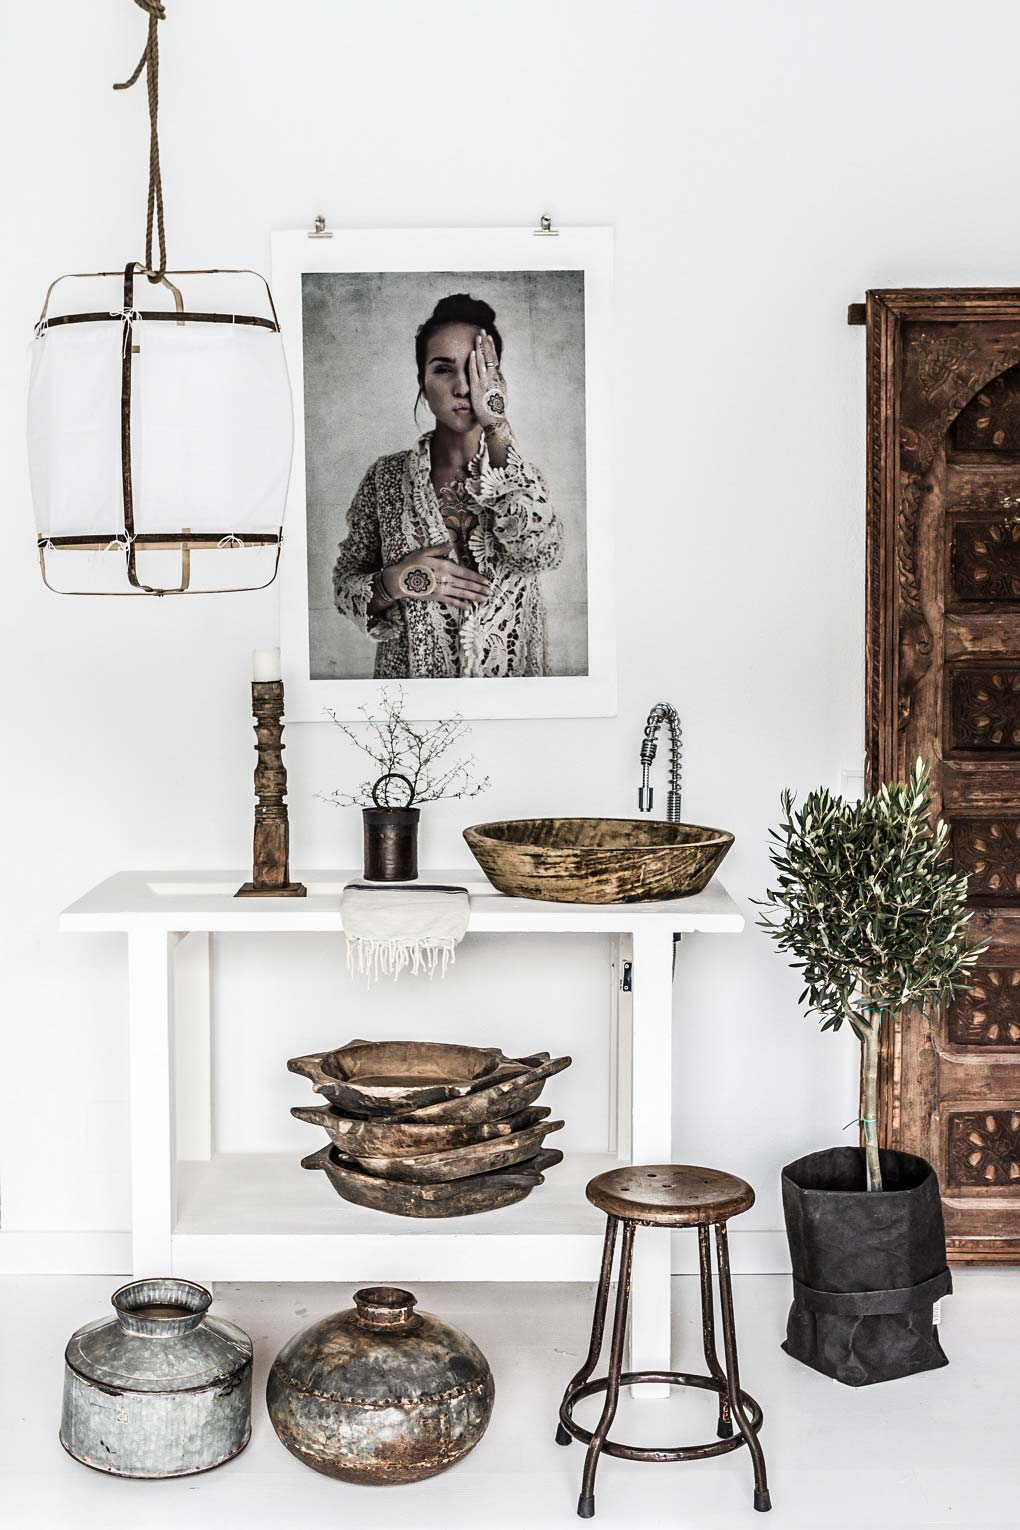 Ethnic Design With Scandinavian Simplicity - Decoholic